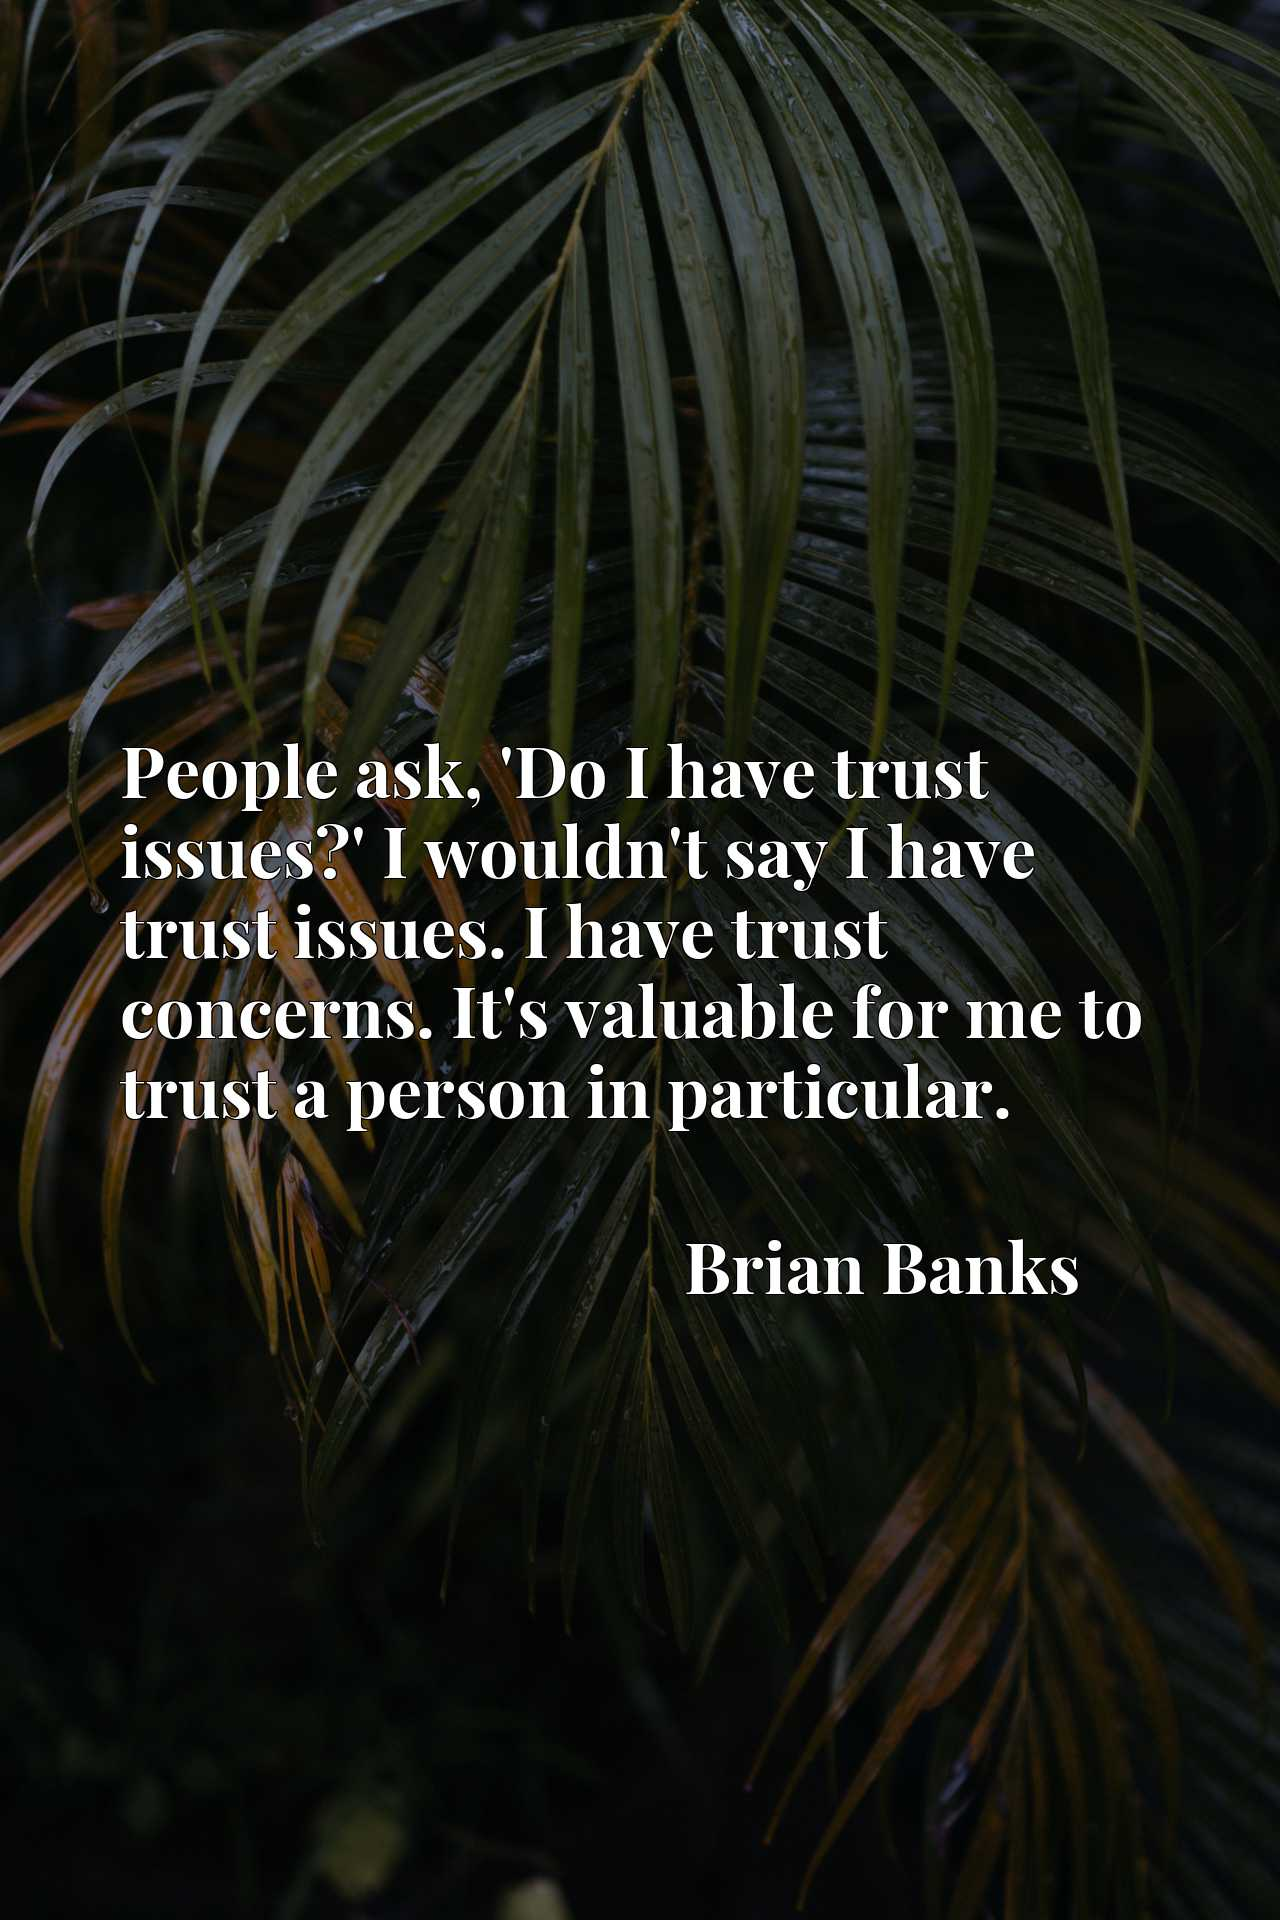 People ask, 'Do I have trust issues?' I wouldn't say I have trust issues. I have trust concerns. It's valuable for me to trust a person in particular.